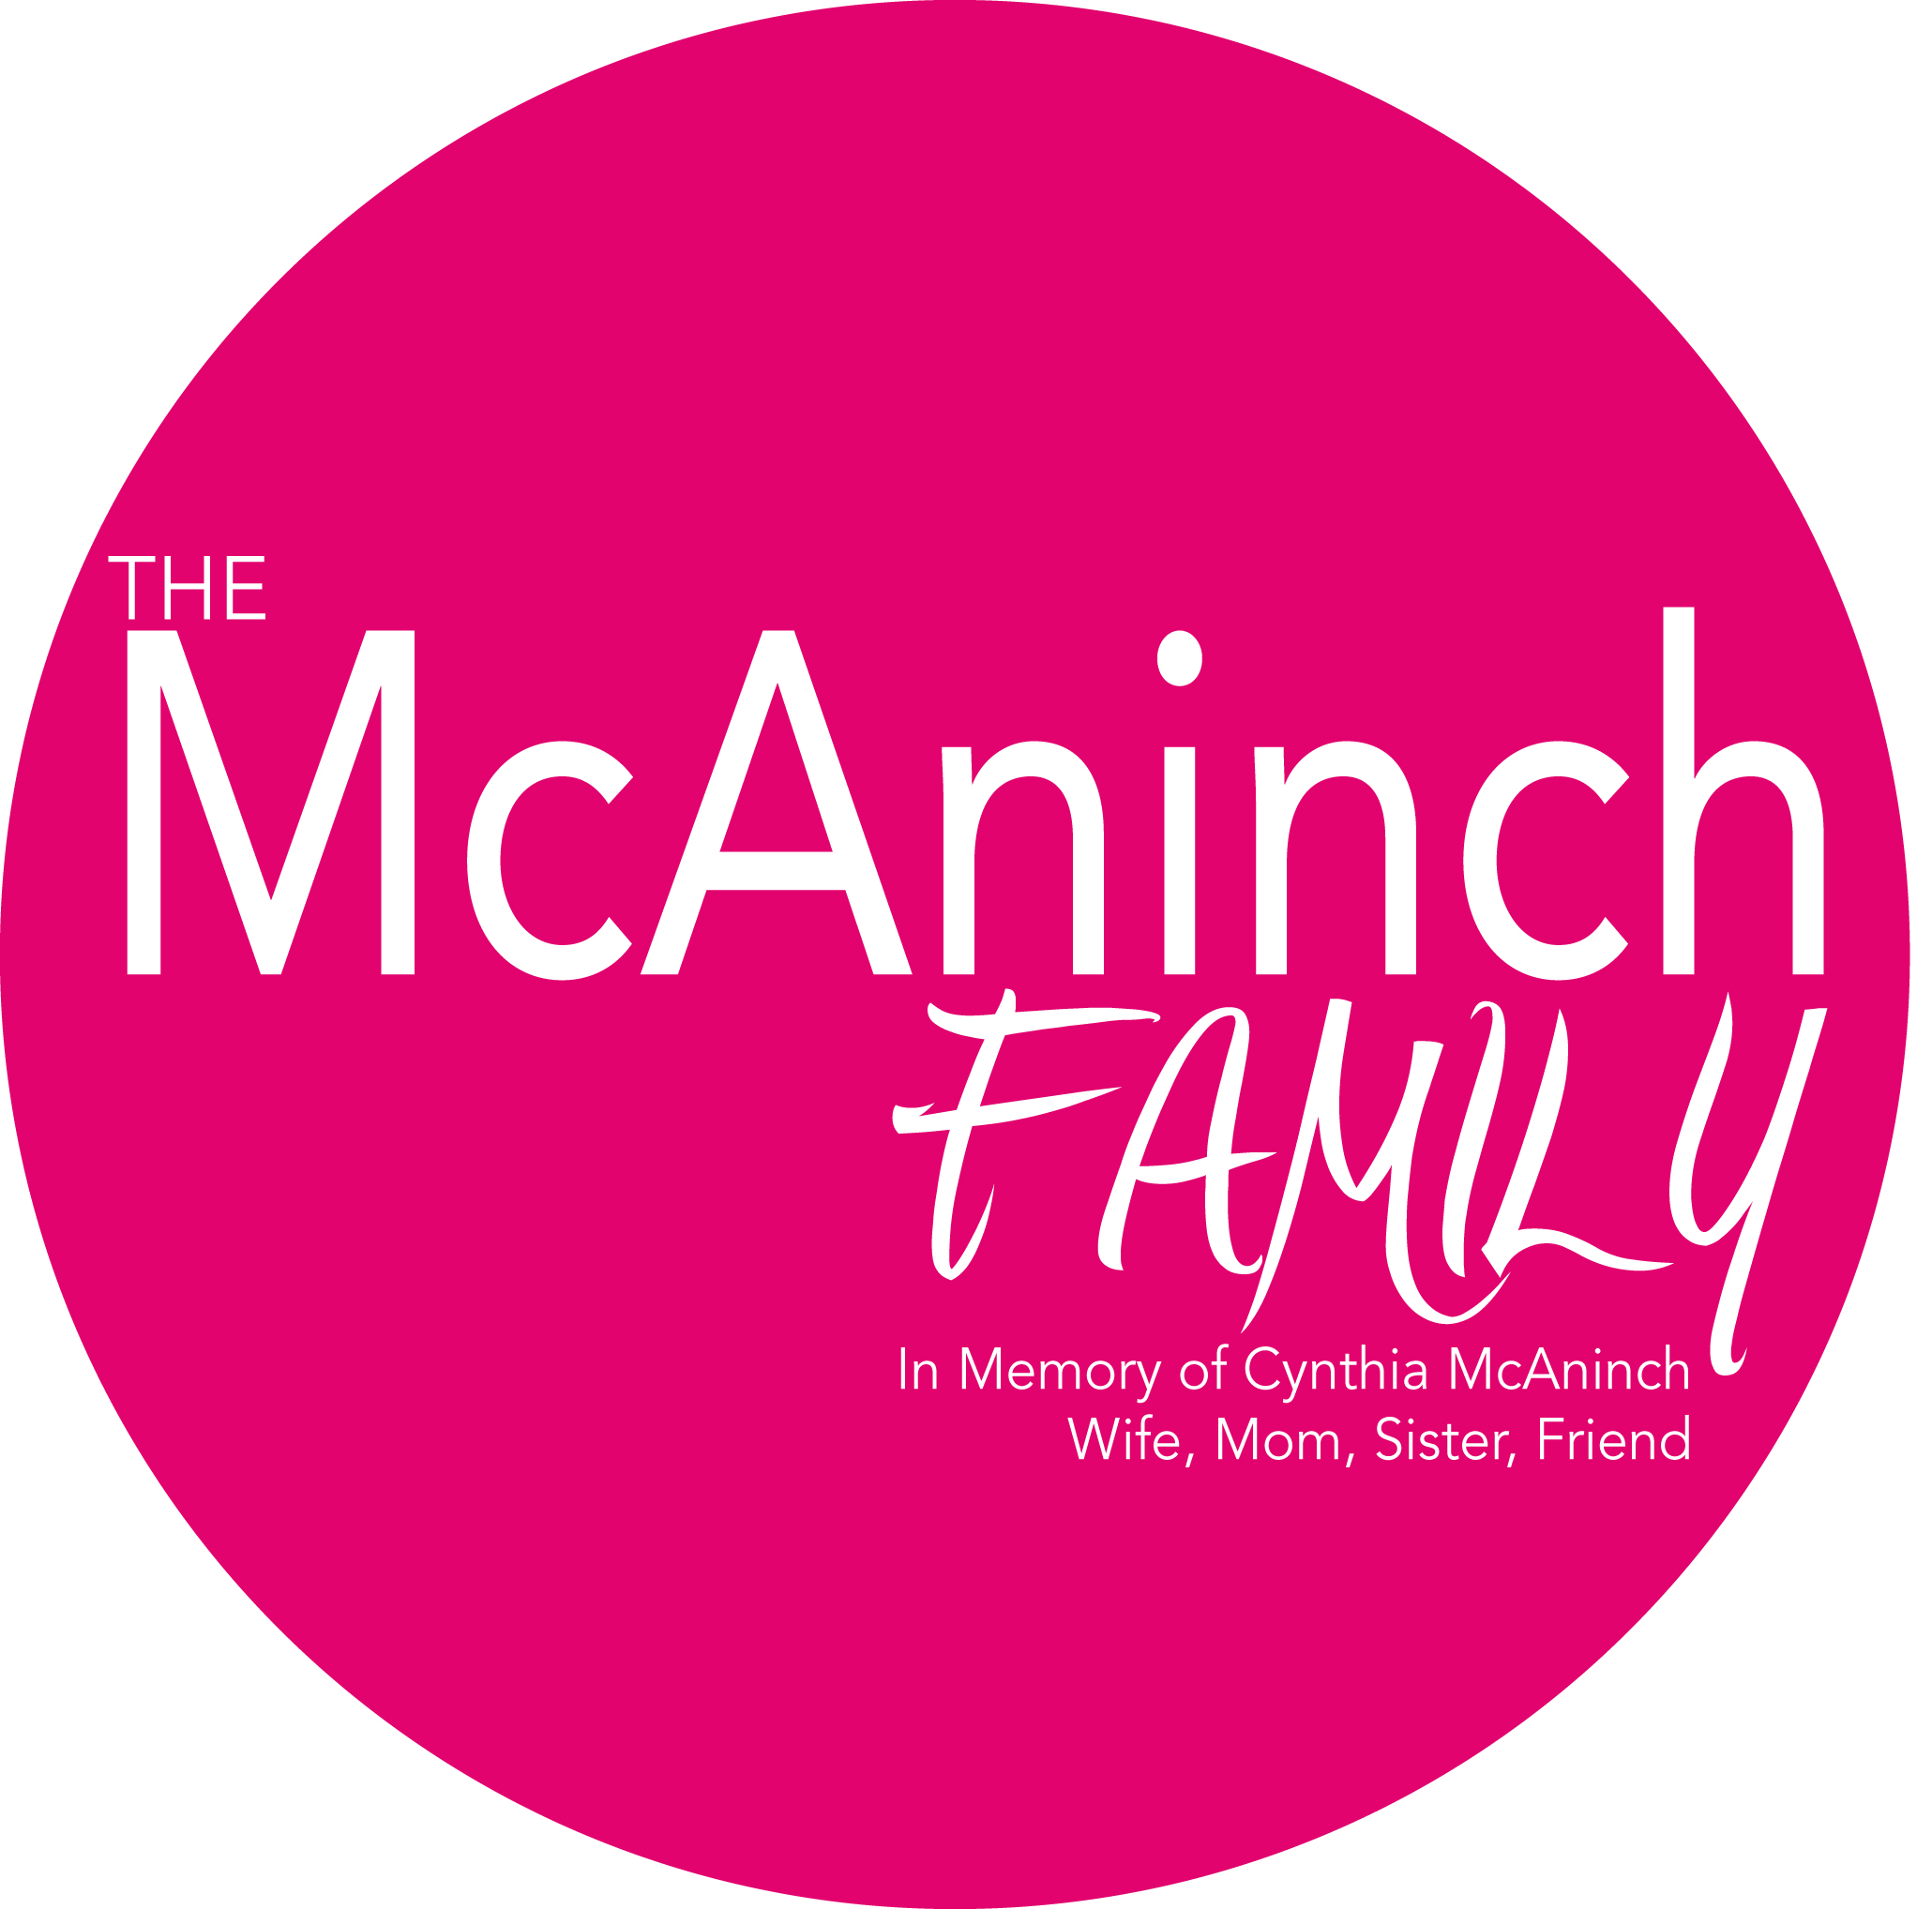 McAninch